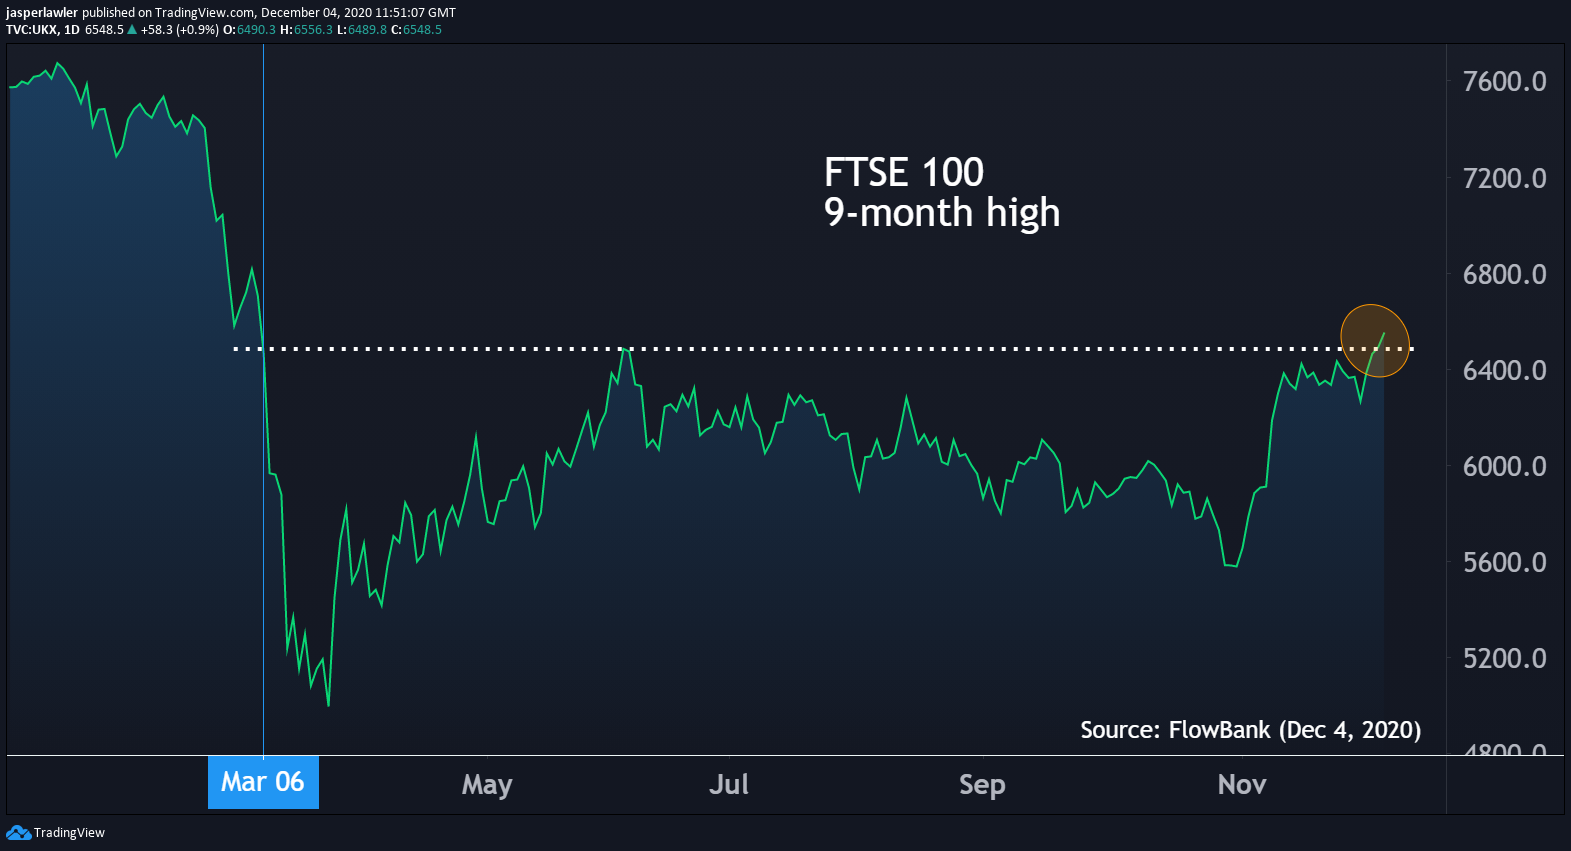 FTSE 100 reaches 9-month high on Brexit and vaccine optimism